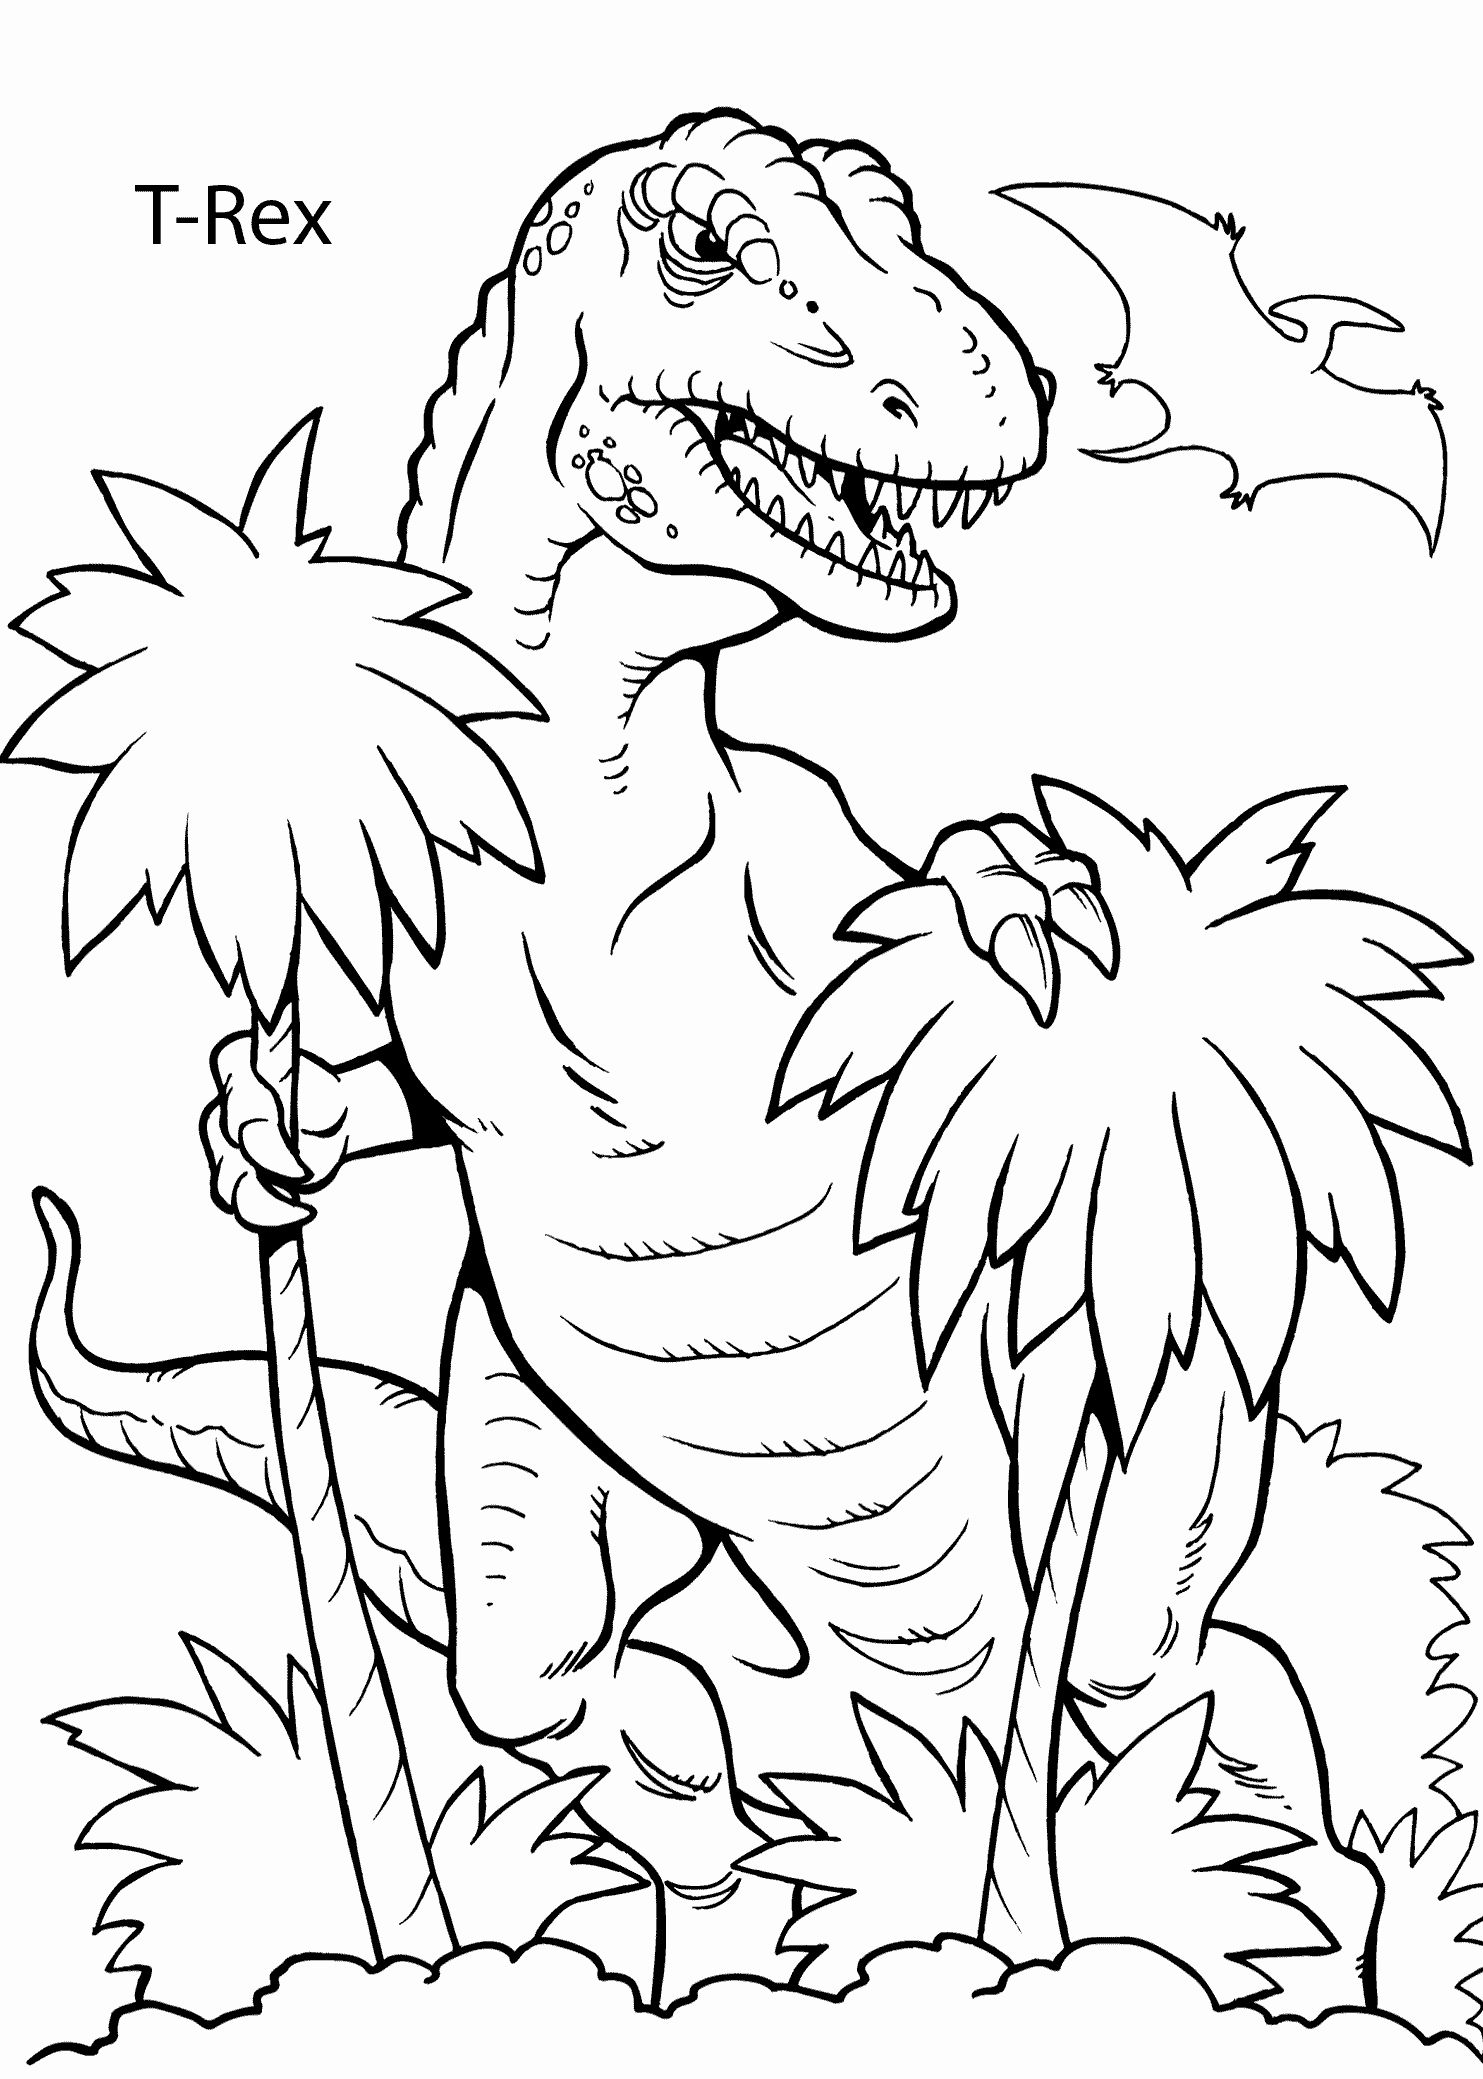 Pin By Penelope Webster On Desenhos Para Colorir Spring Coloring Pages Coloring Pages For Boys Dinosaur Coloring Pages